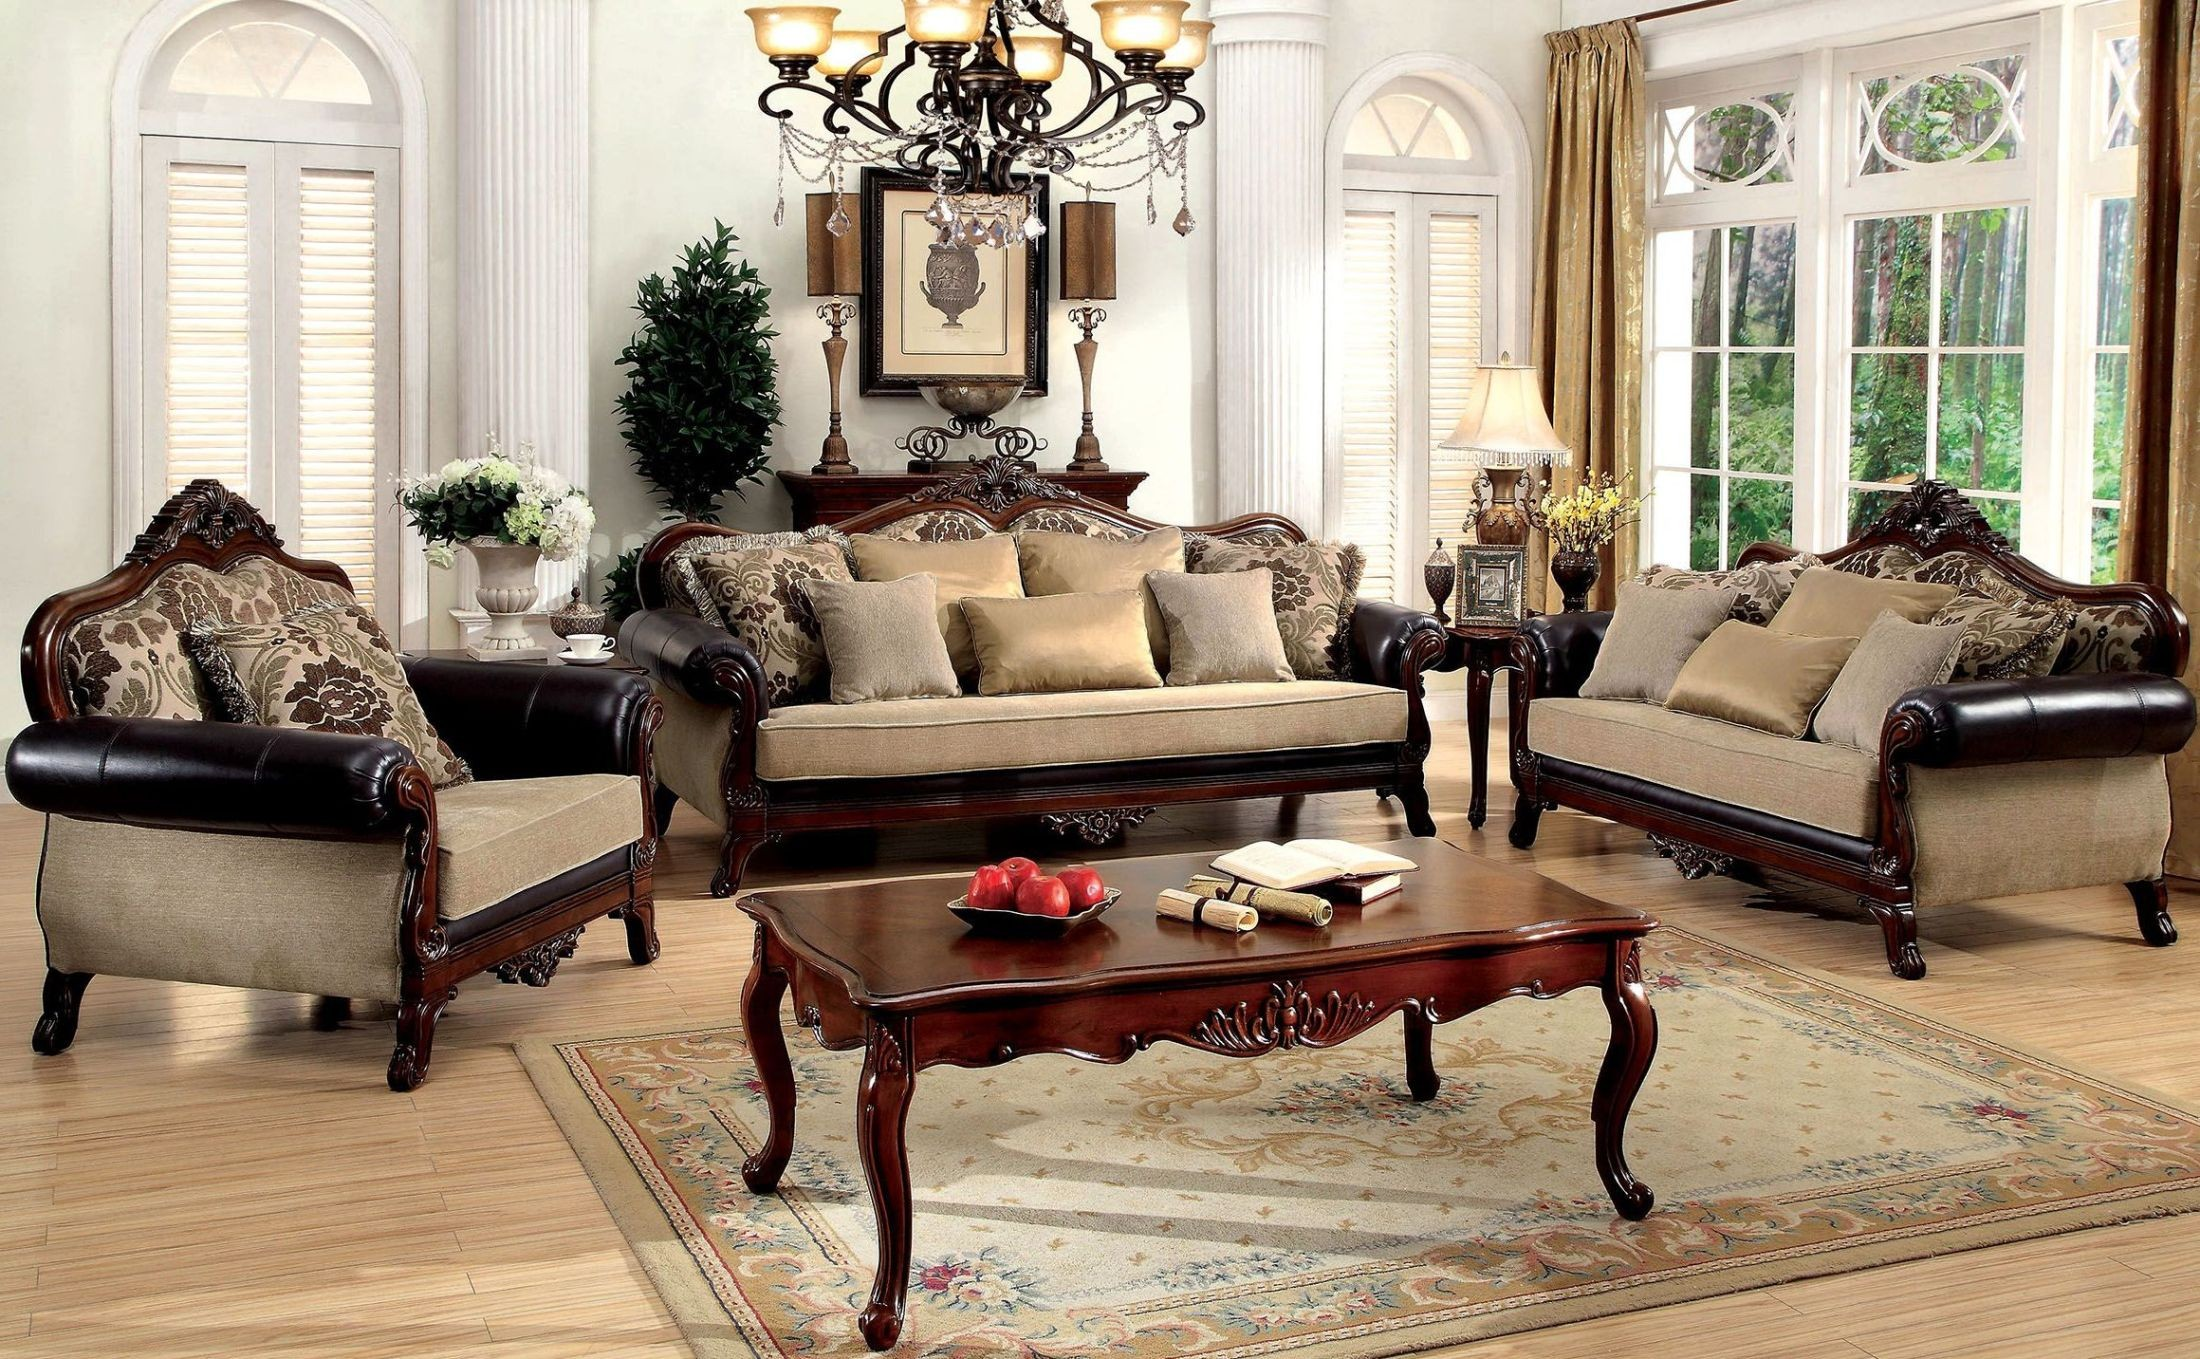 rashid dark oak living room set cm6789 sf pk furniture of america